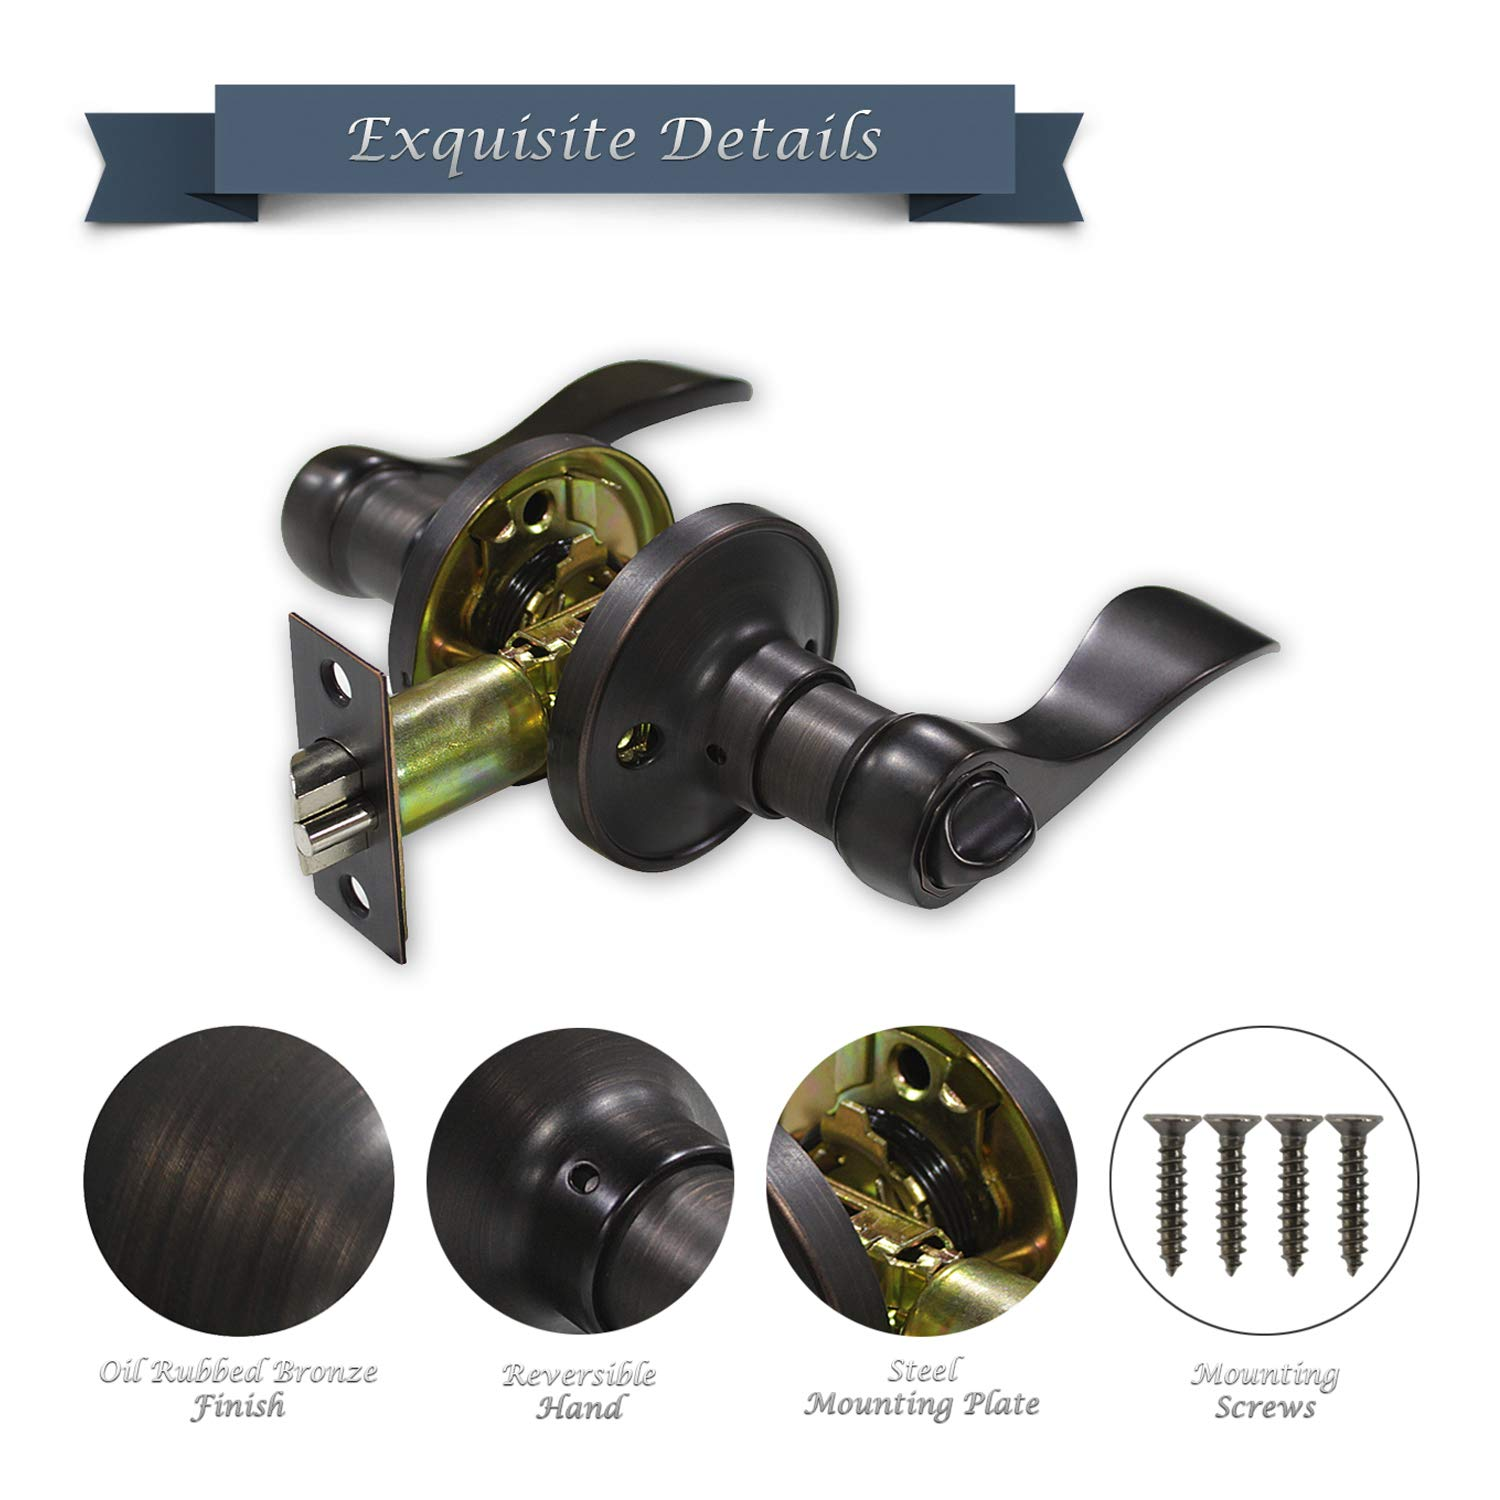 Keyed Entry Door Lever Handle with Reversible Left or Right Handle, Oil Rubbed Bronze Finish, Vintage Design (Keyed Alike) by Home Hardware Supply (Image #5)